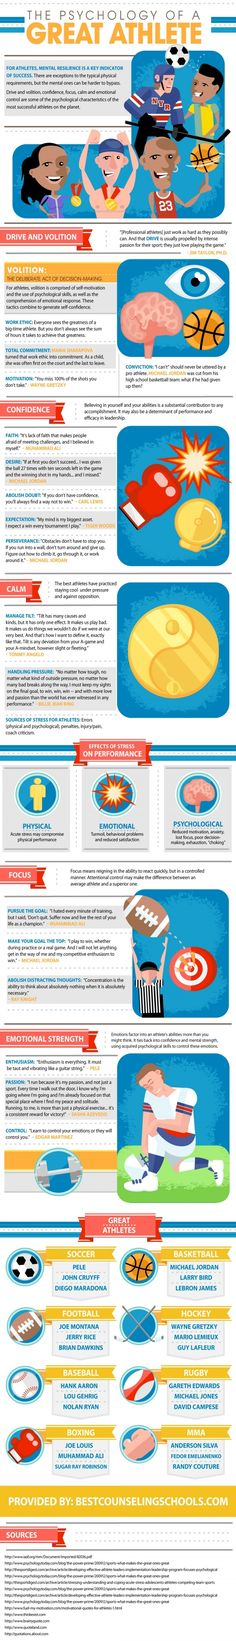 The Psychology of a Great Athlete #Infographic